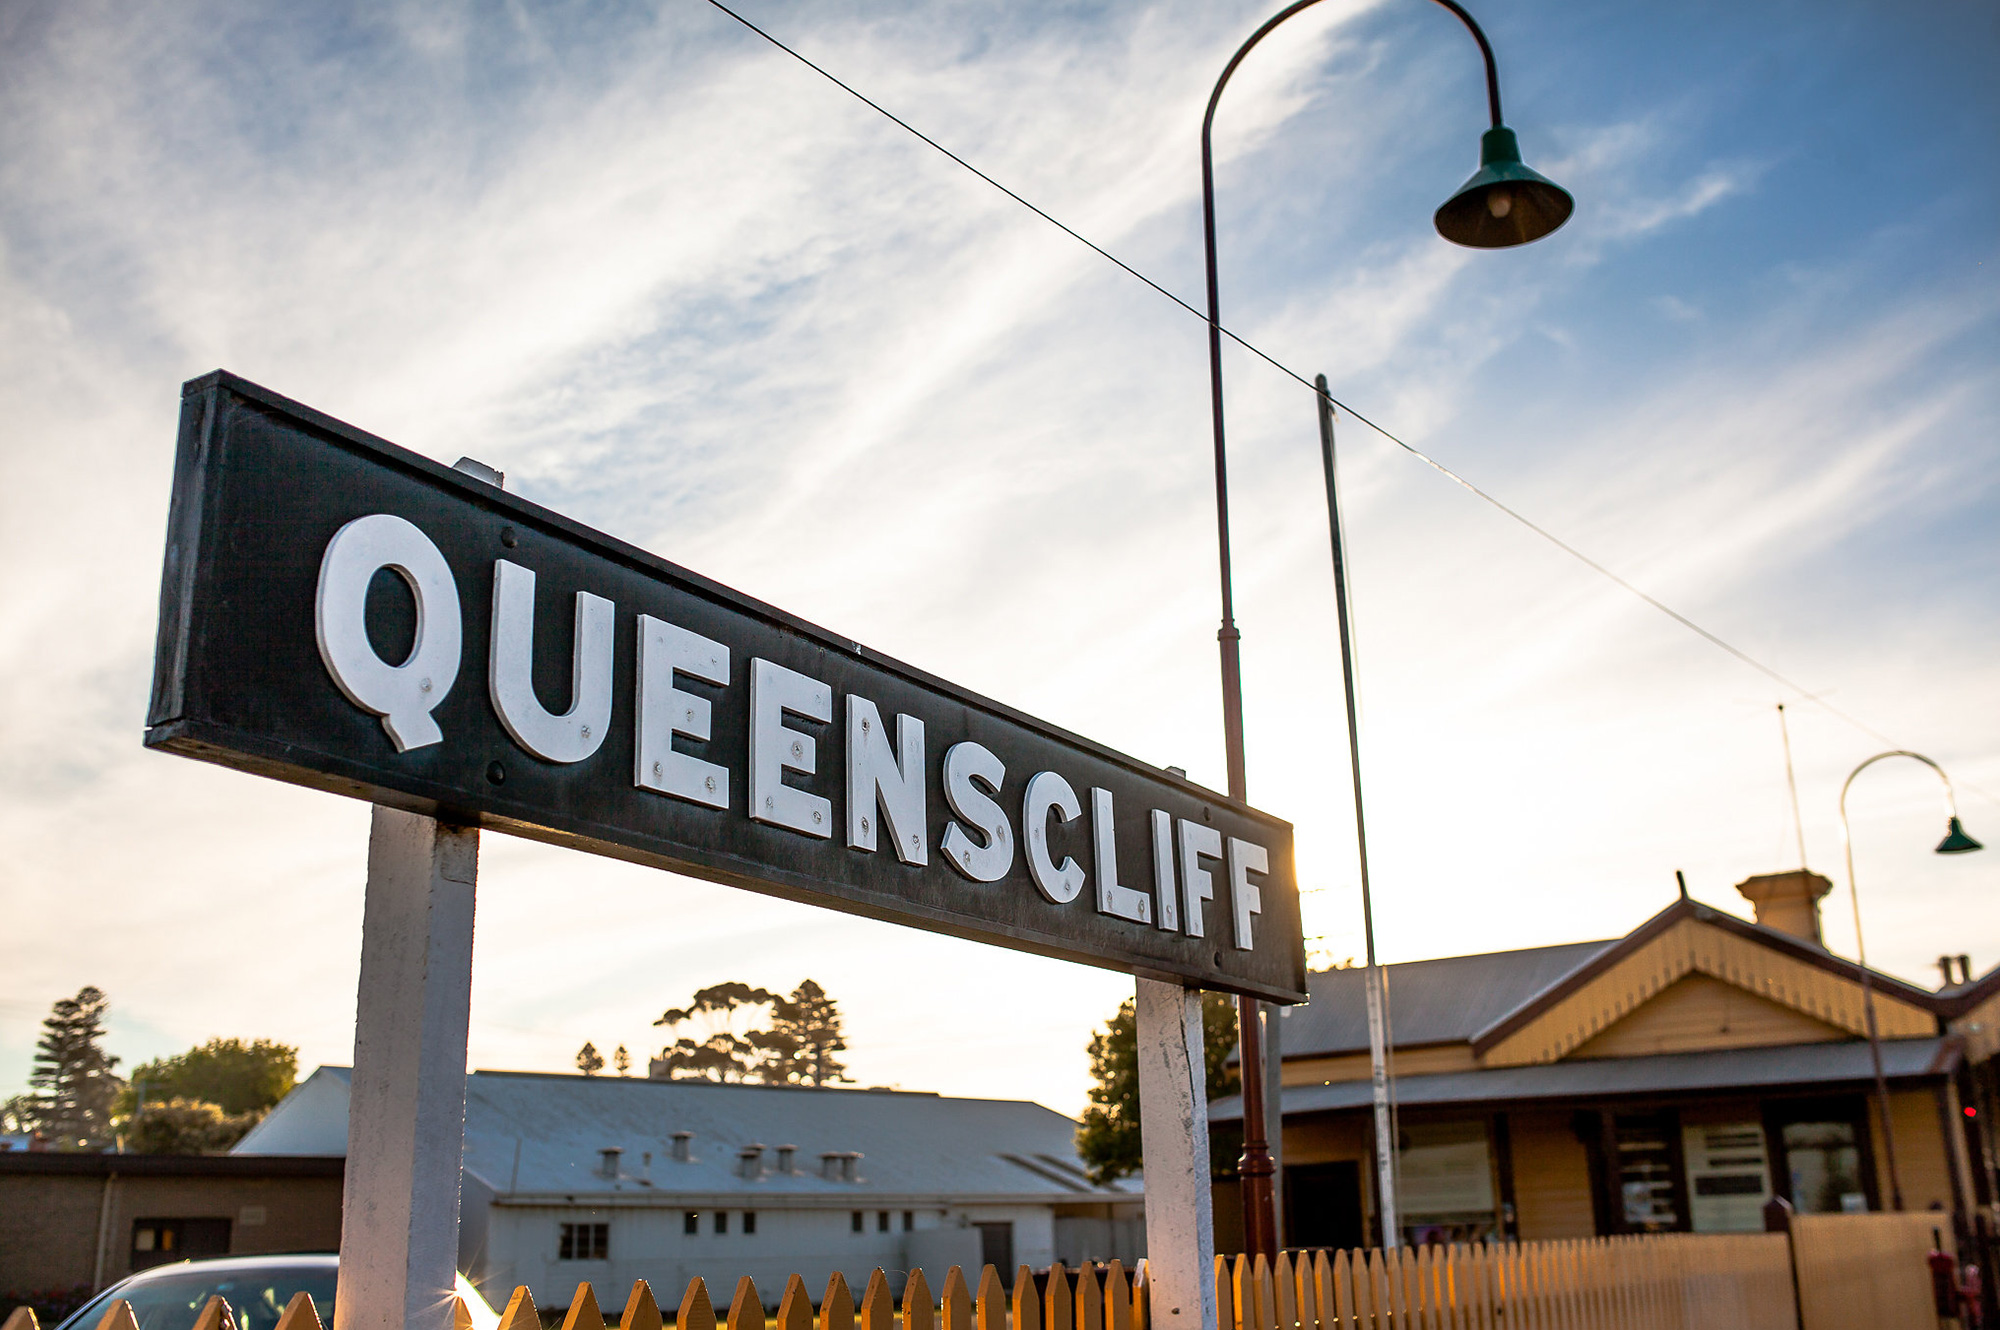 queenscliff railway station sign, queenscliff point lonsdale holiday accommodation australia, beach house